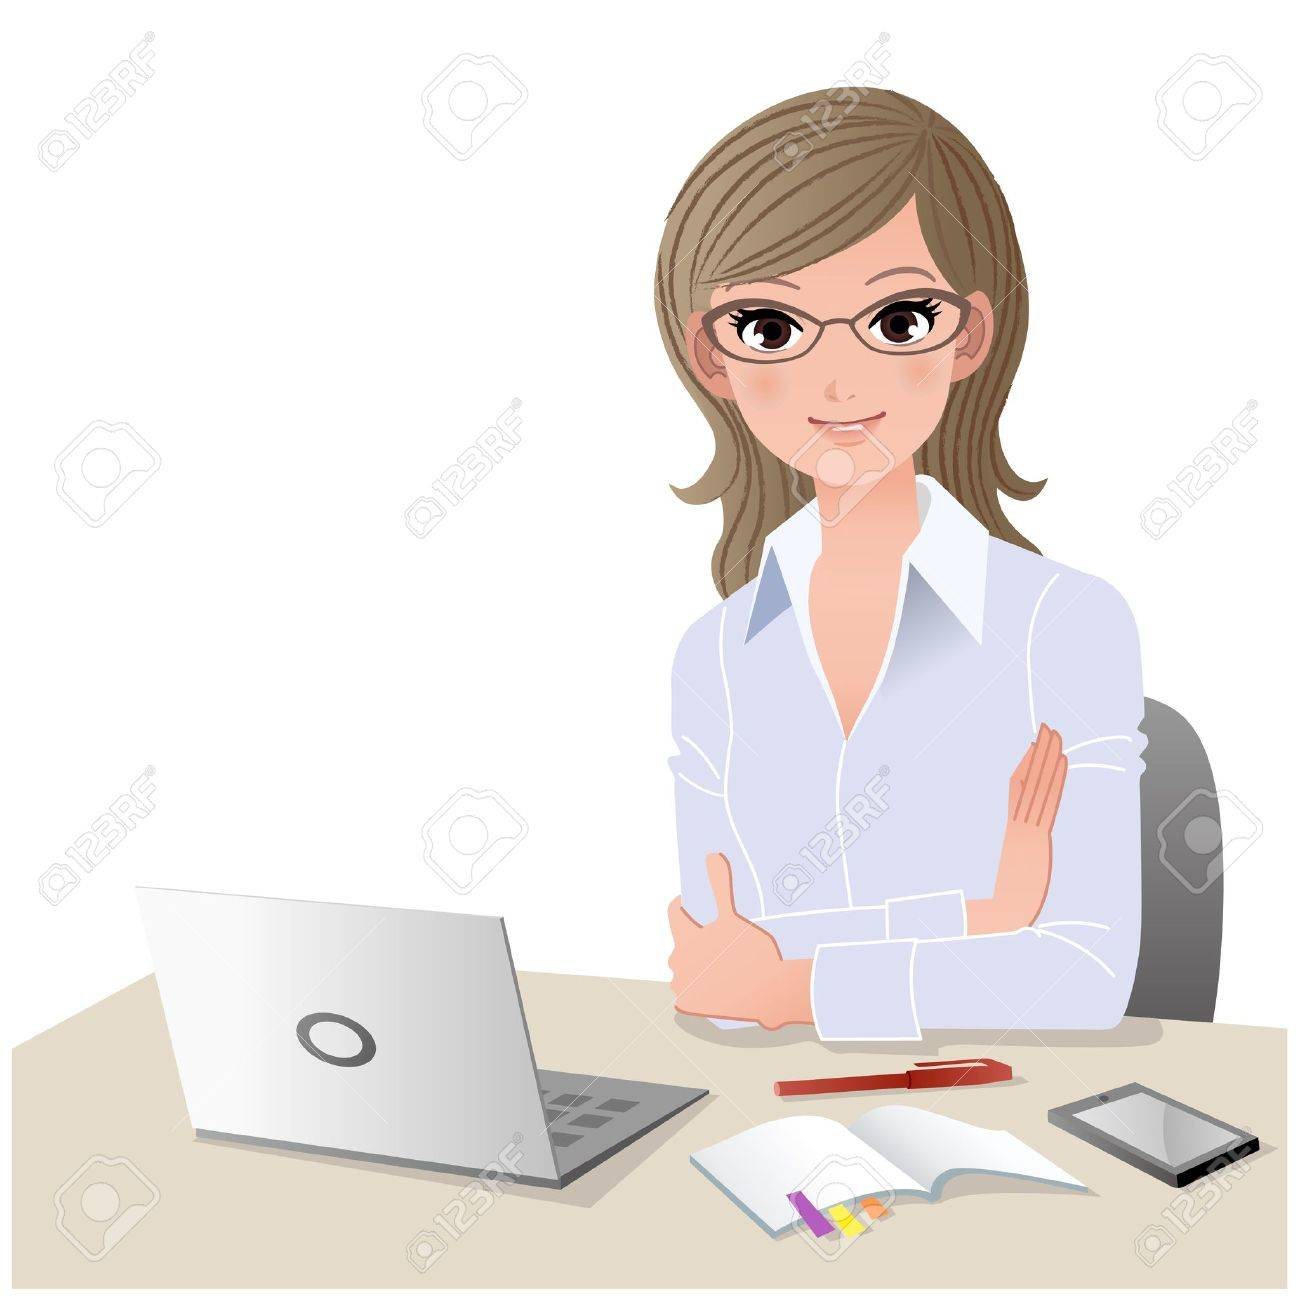 Young woman wearing glasses at desk with laptop computer and mobile phone  Copy space Gradient, Blending tool is used Stock Vector - 17688022